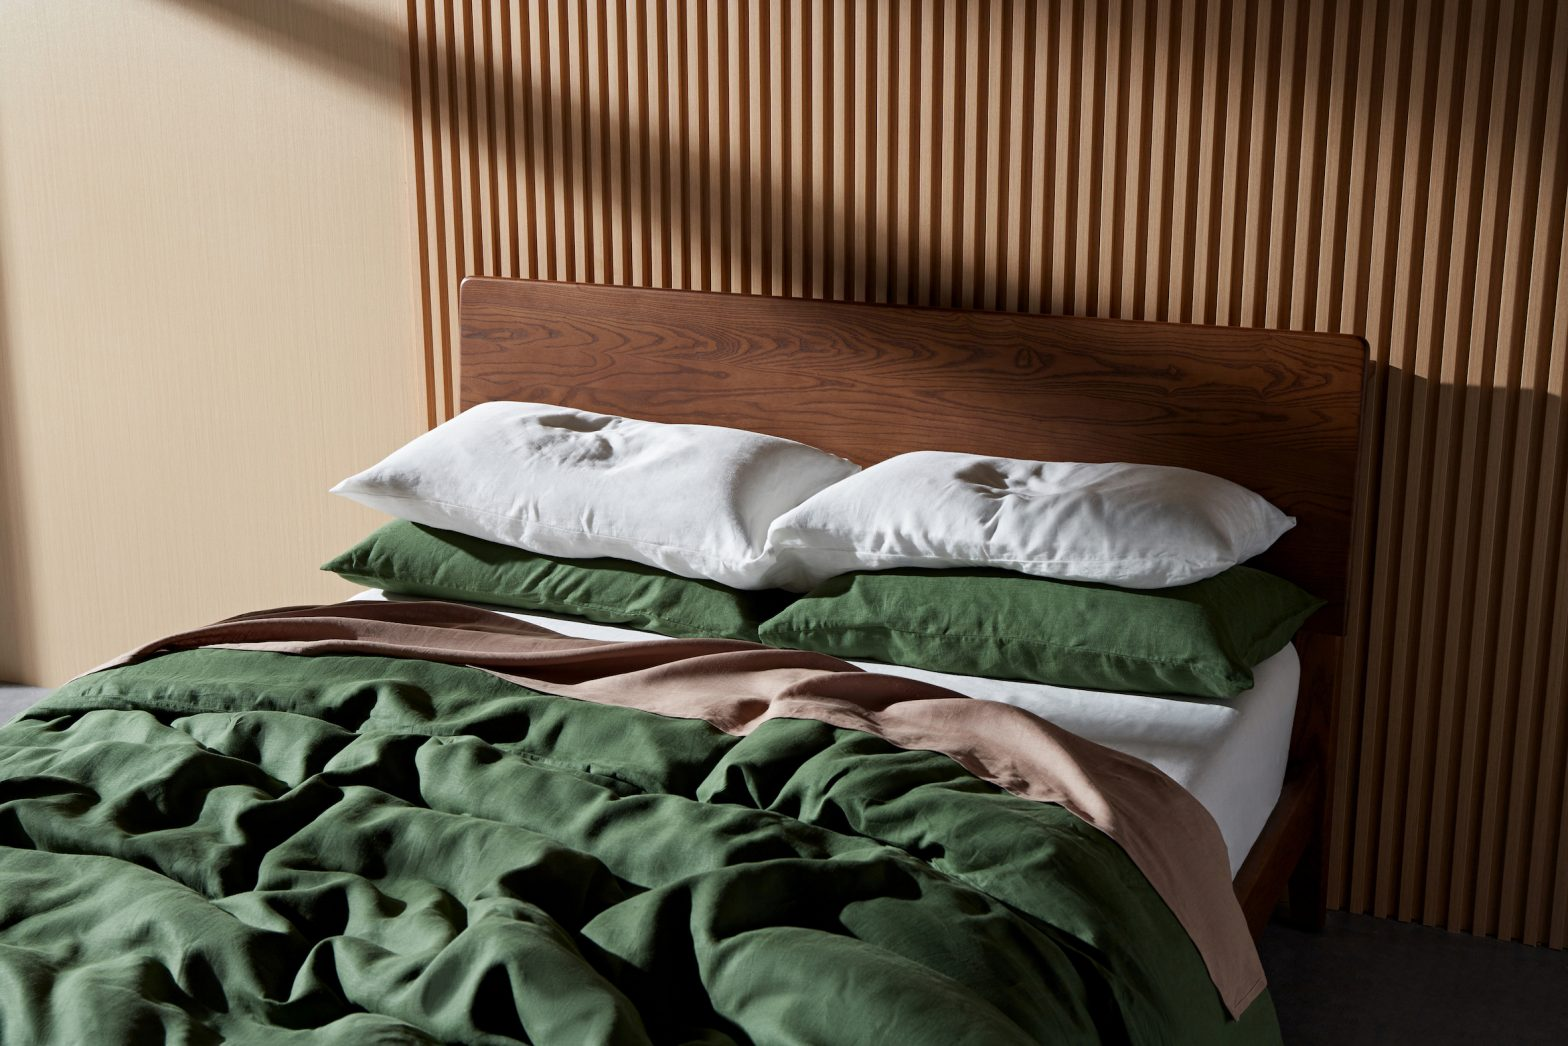 Green flax linen sheets on a bed,